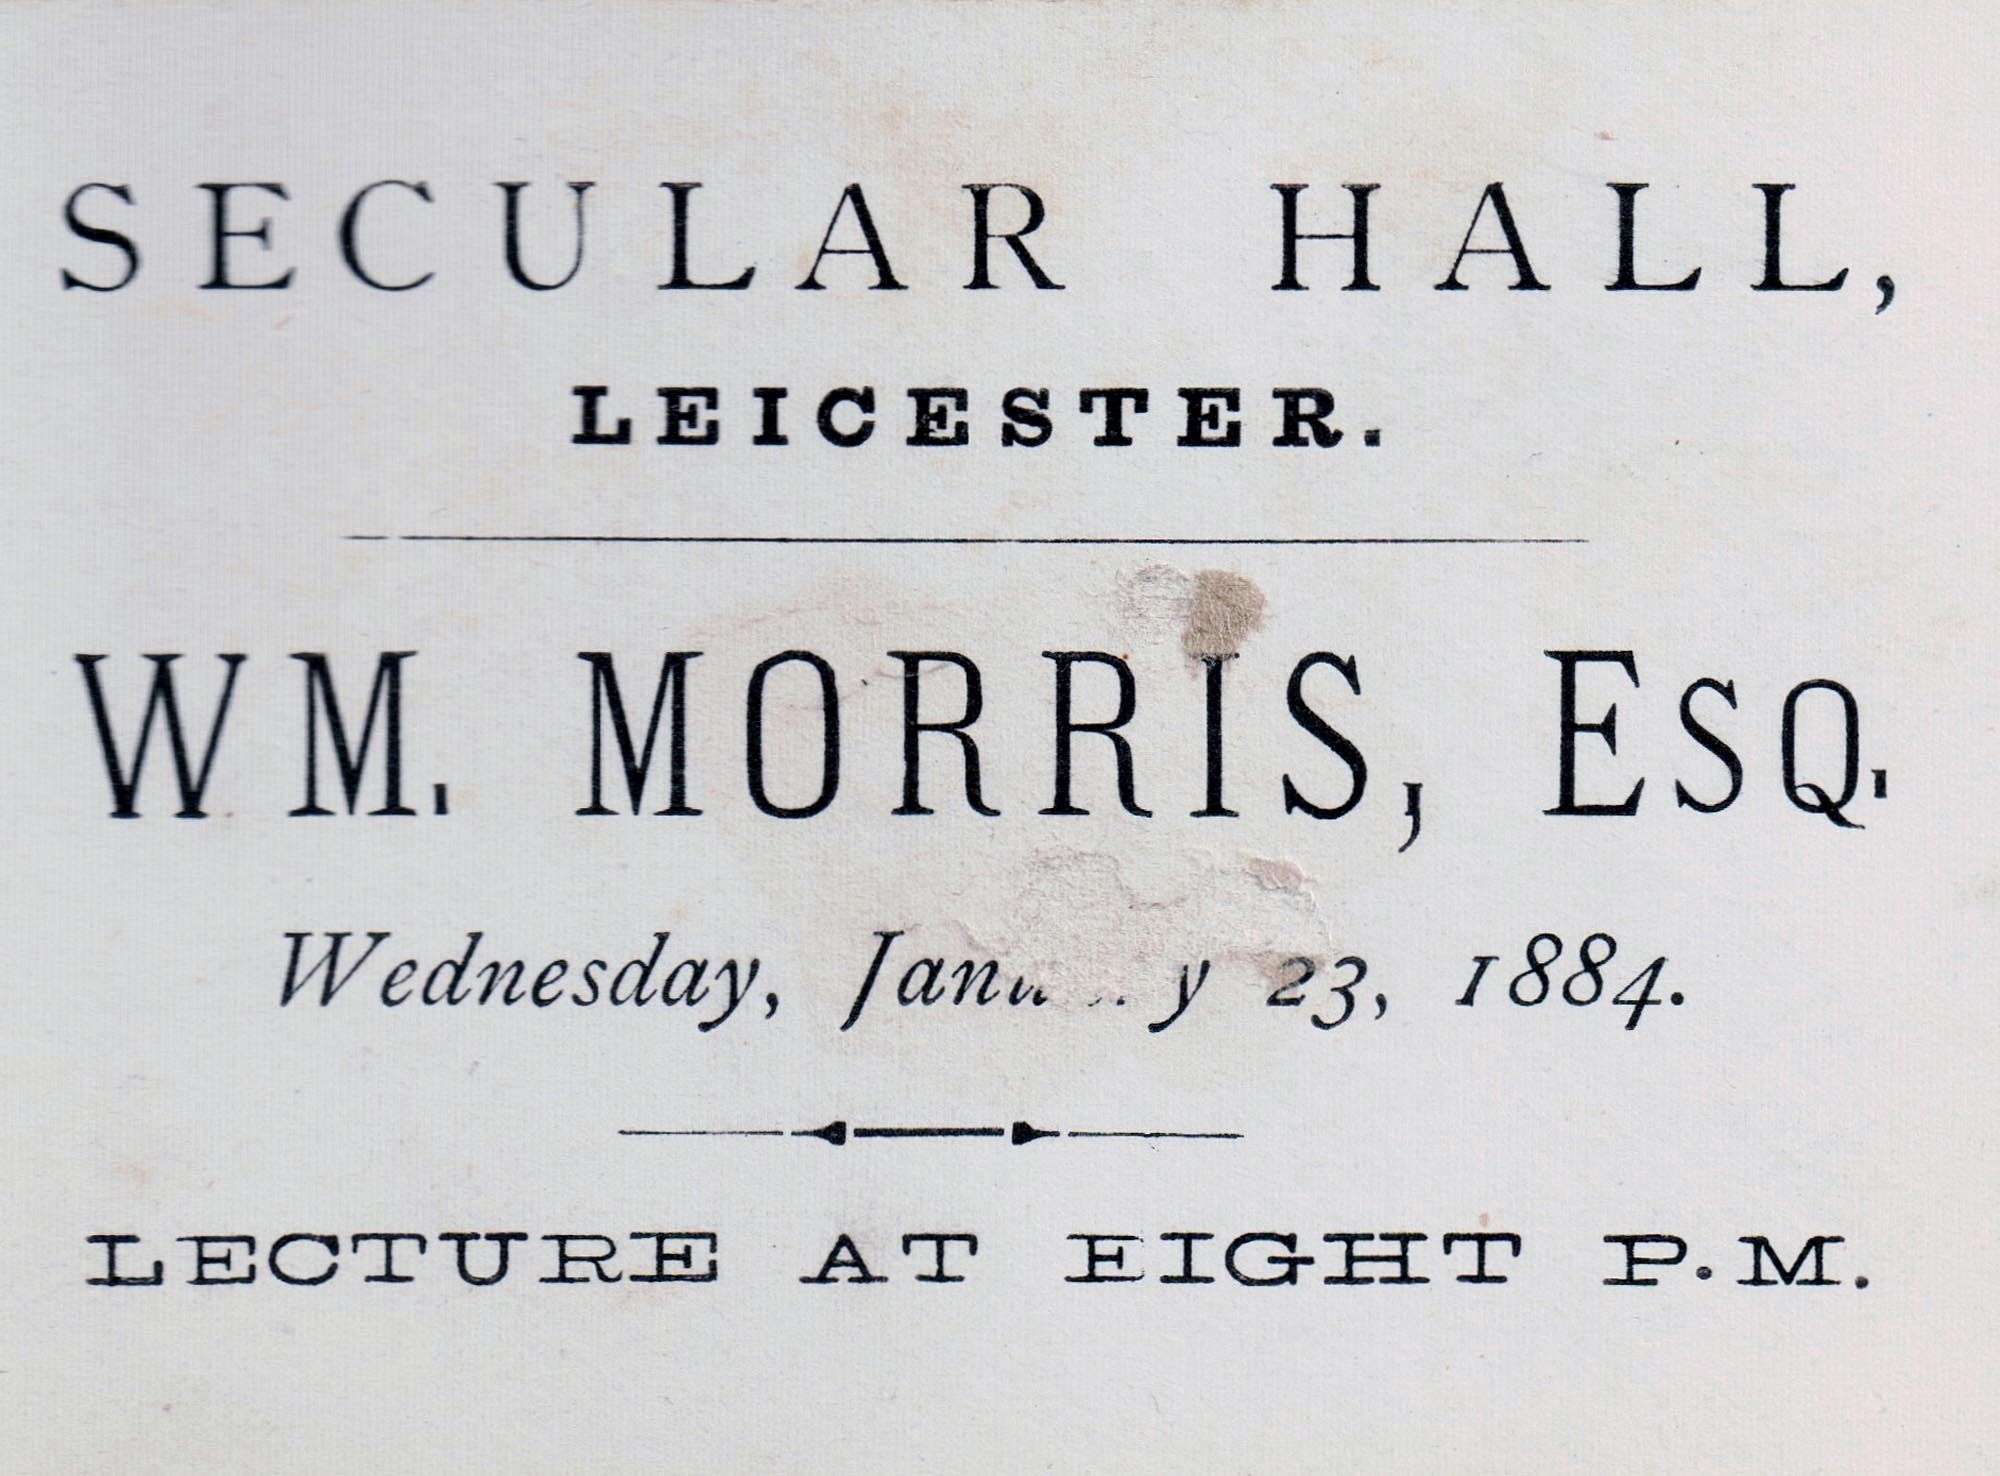 Ticket to the famous William Morris lecture of 1884 -